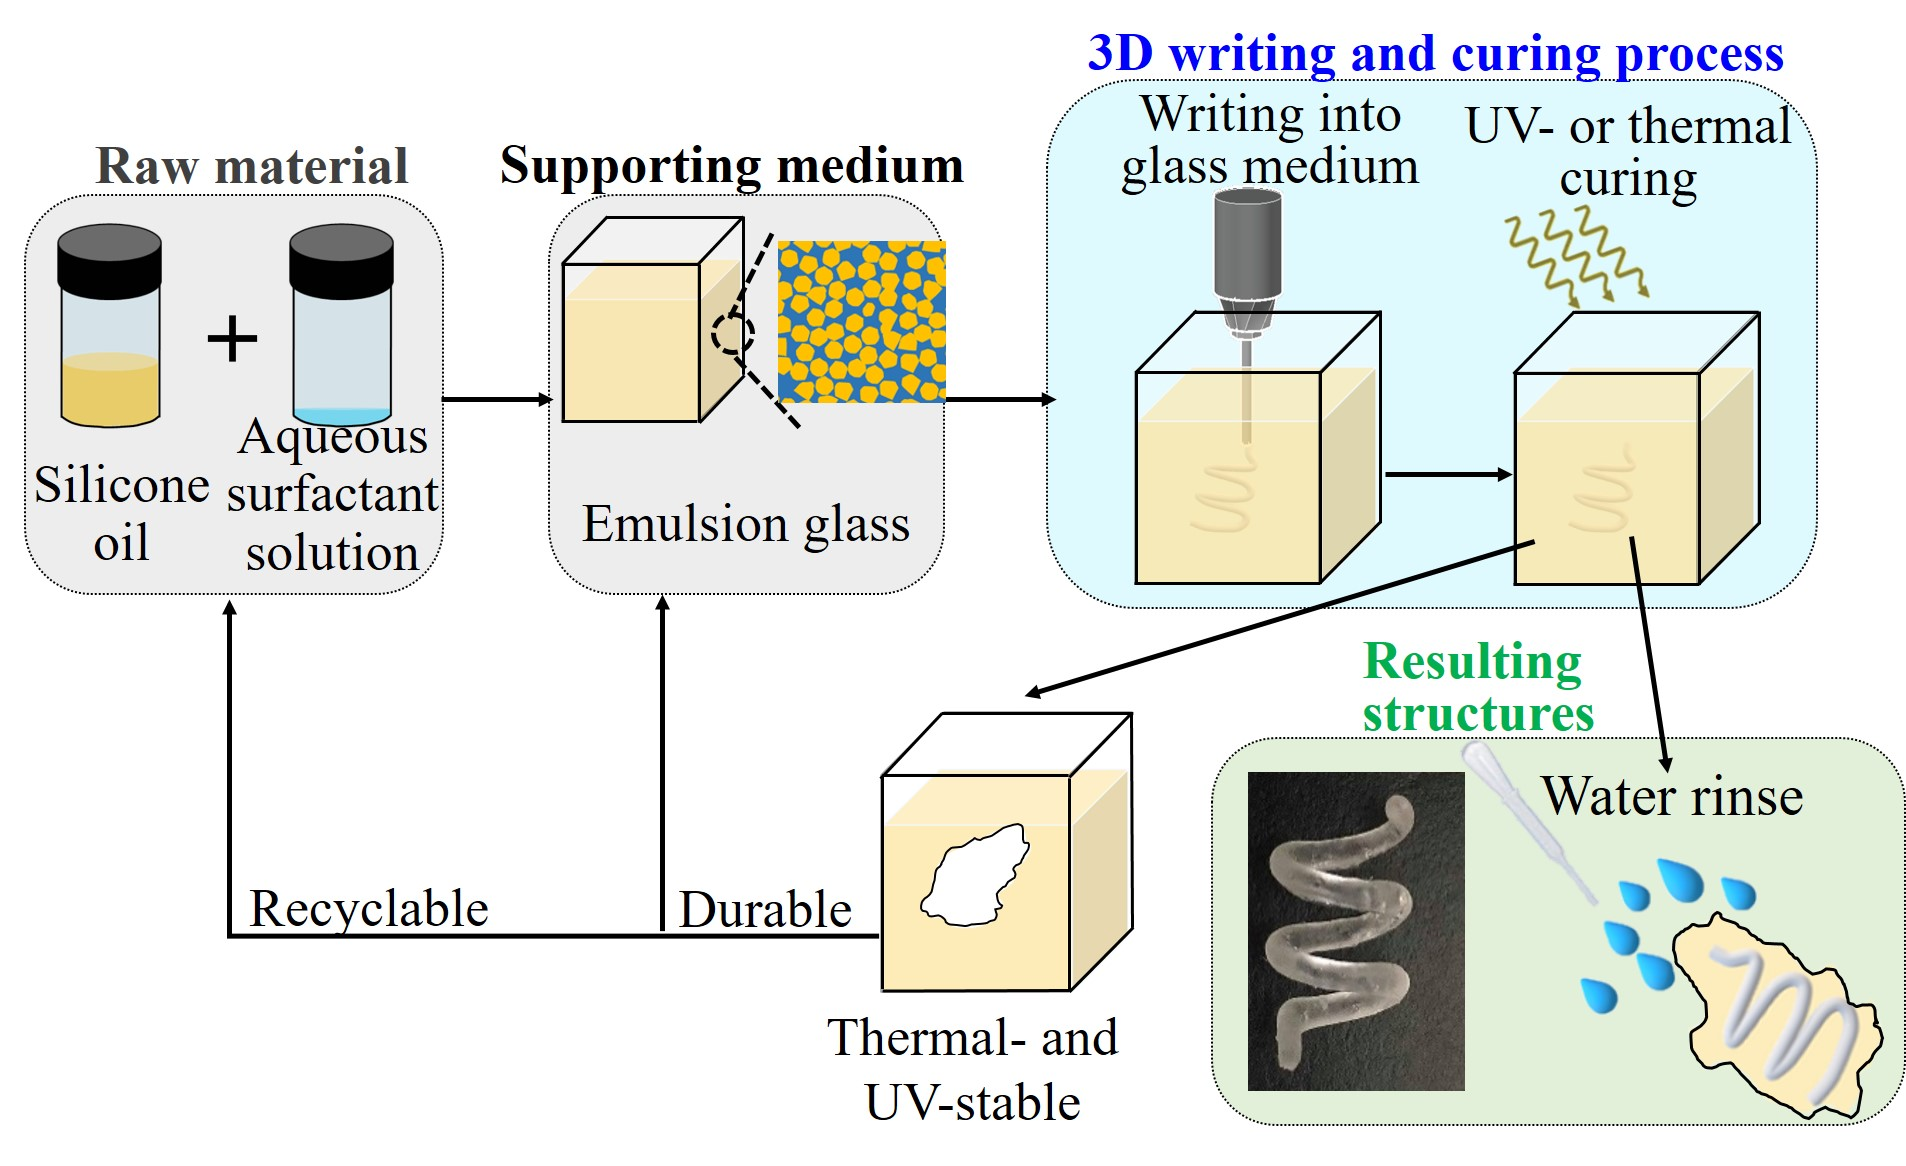 UV-resistant Self-healing Emulsion Glass as a New Liquid-like Solid Material for 3D Printing